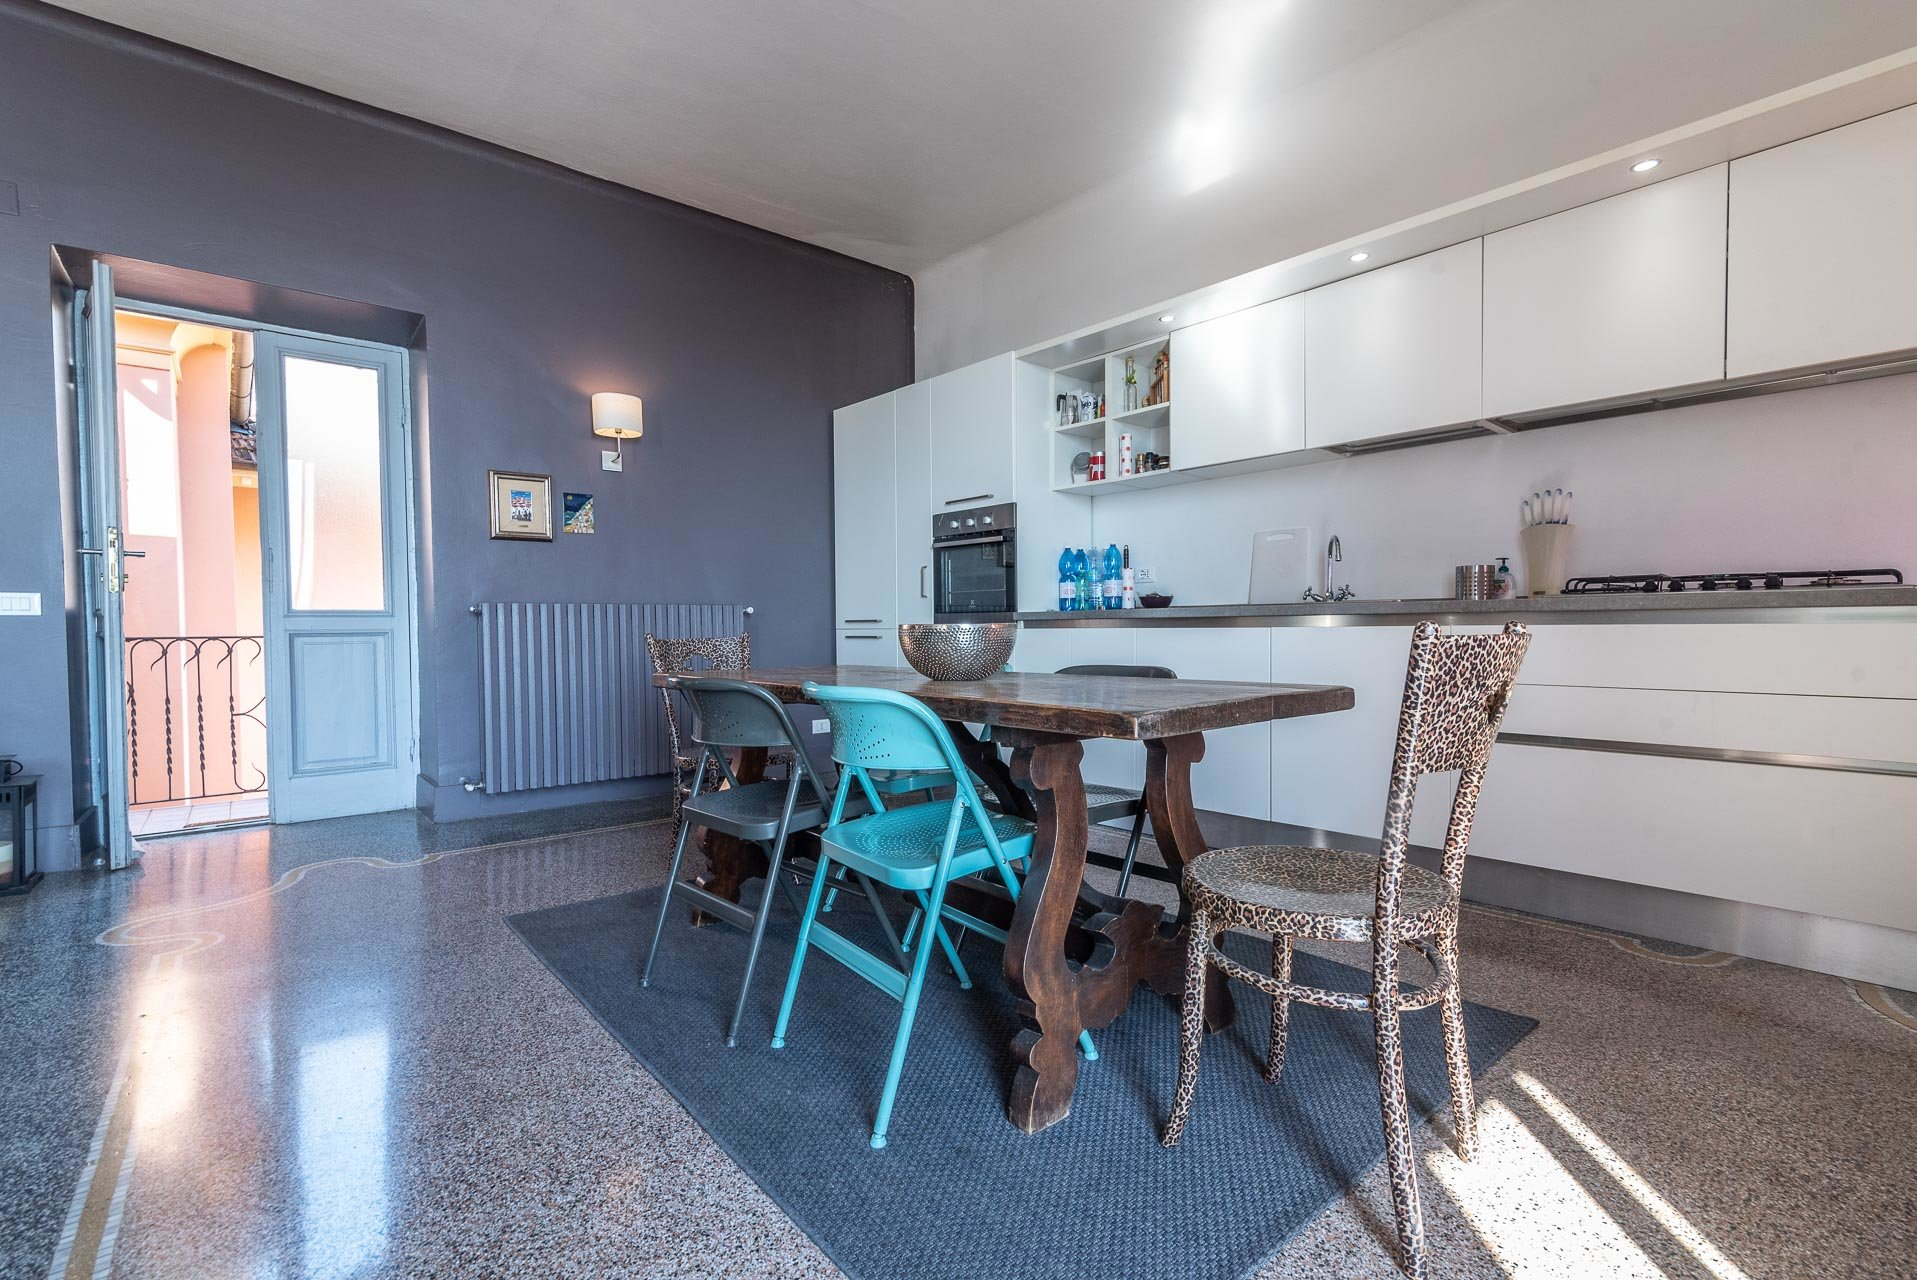 Lesa, apartment for sale on the lakefront - large kitchen